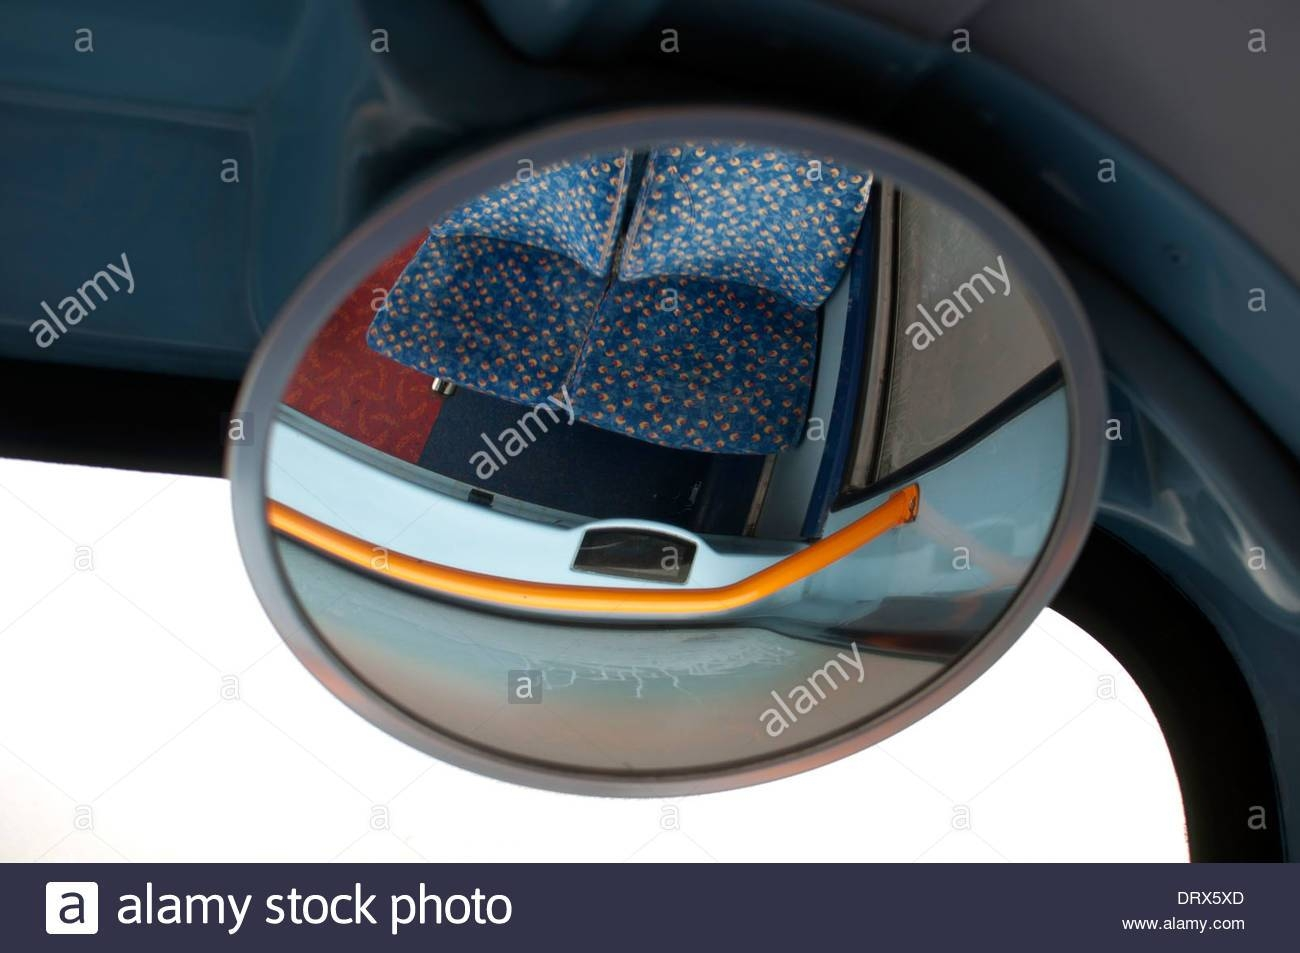 Convex Mirror On A Double Decker Bus Stock Photo, Royalty Free regarding Convex Mirrors (Image 2 of 15)